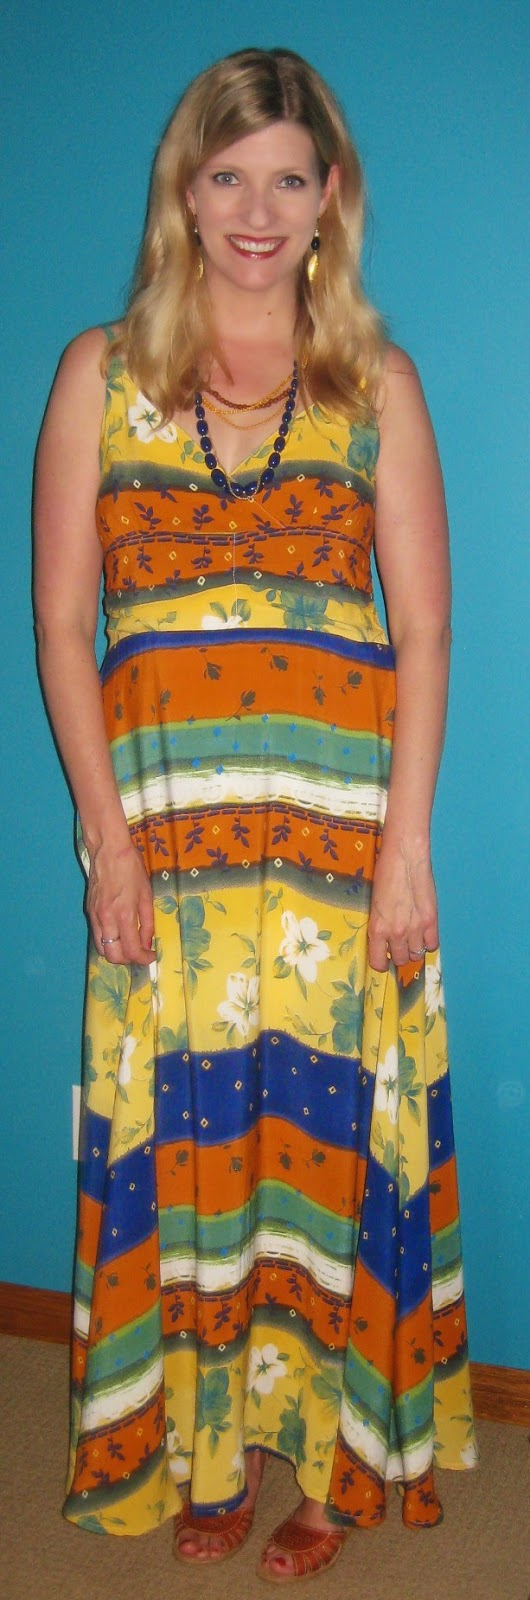 http://vvboutiquestyle.blogspot.ca/2014/06/anthropologie-esque-almost-party-dress.html